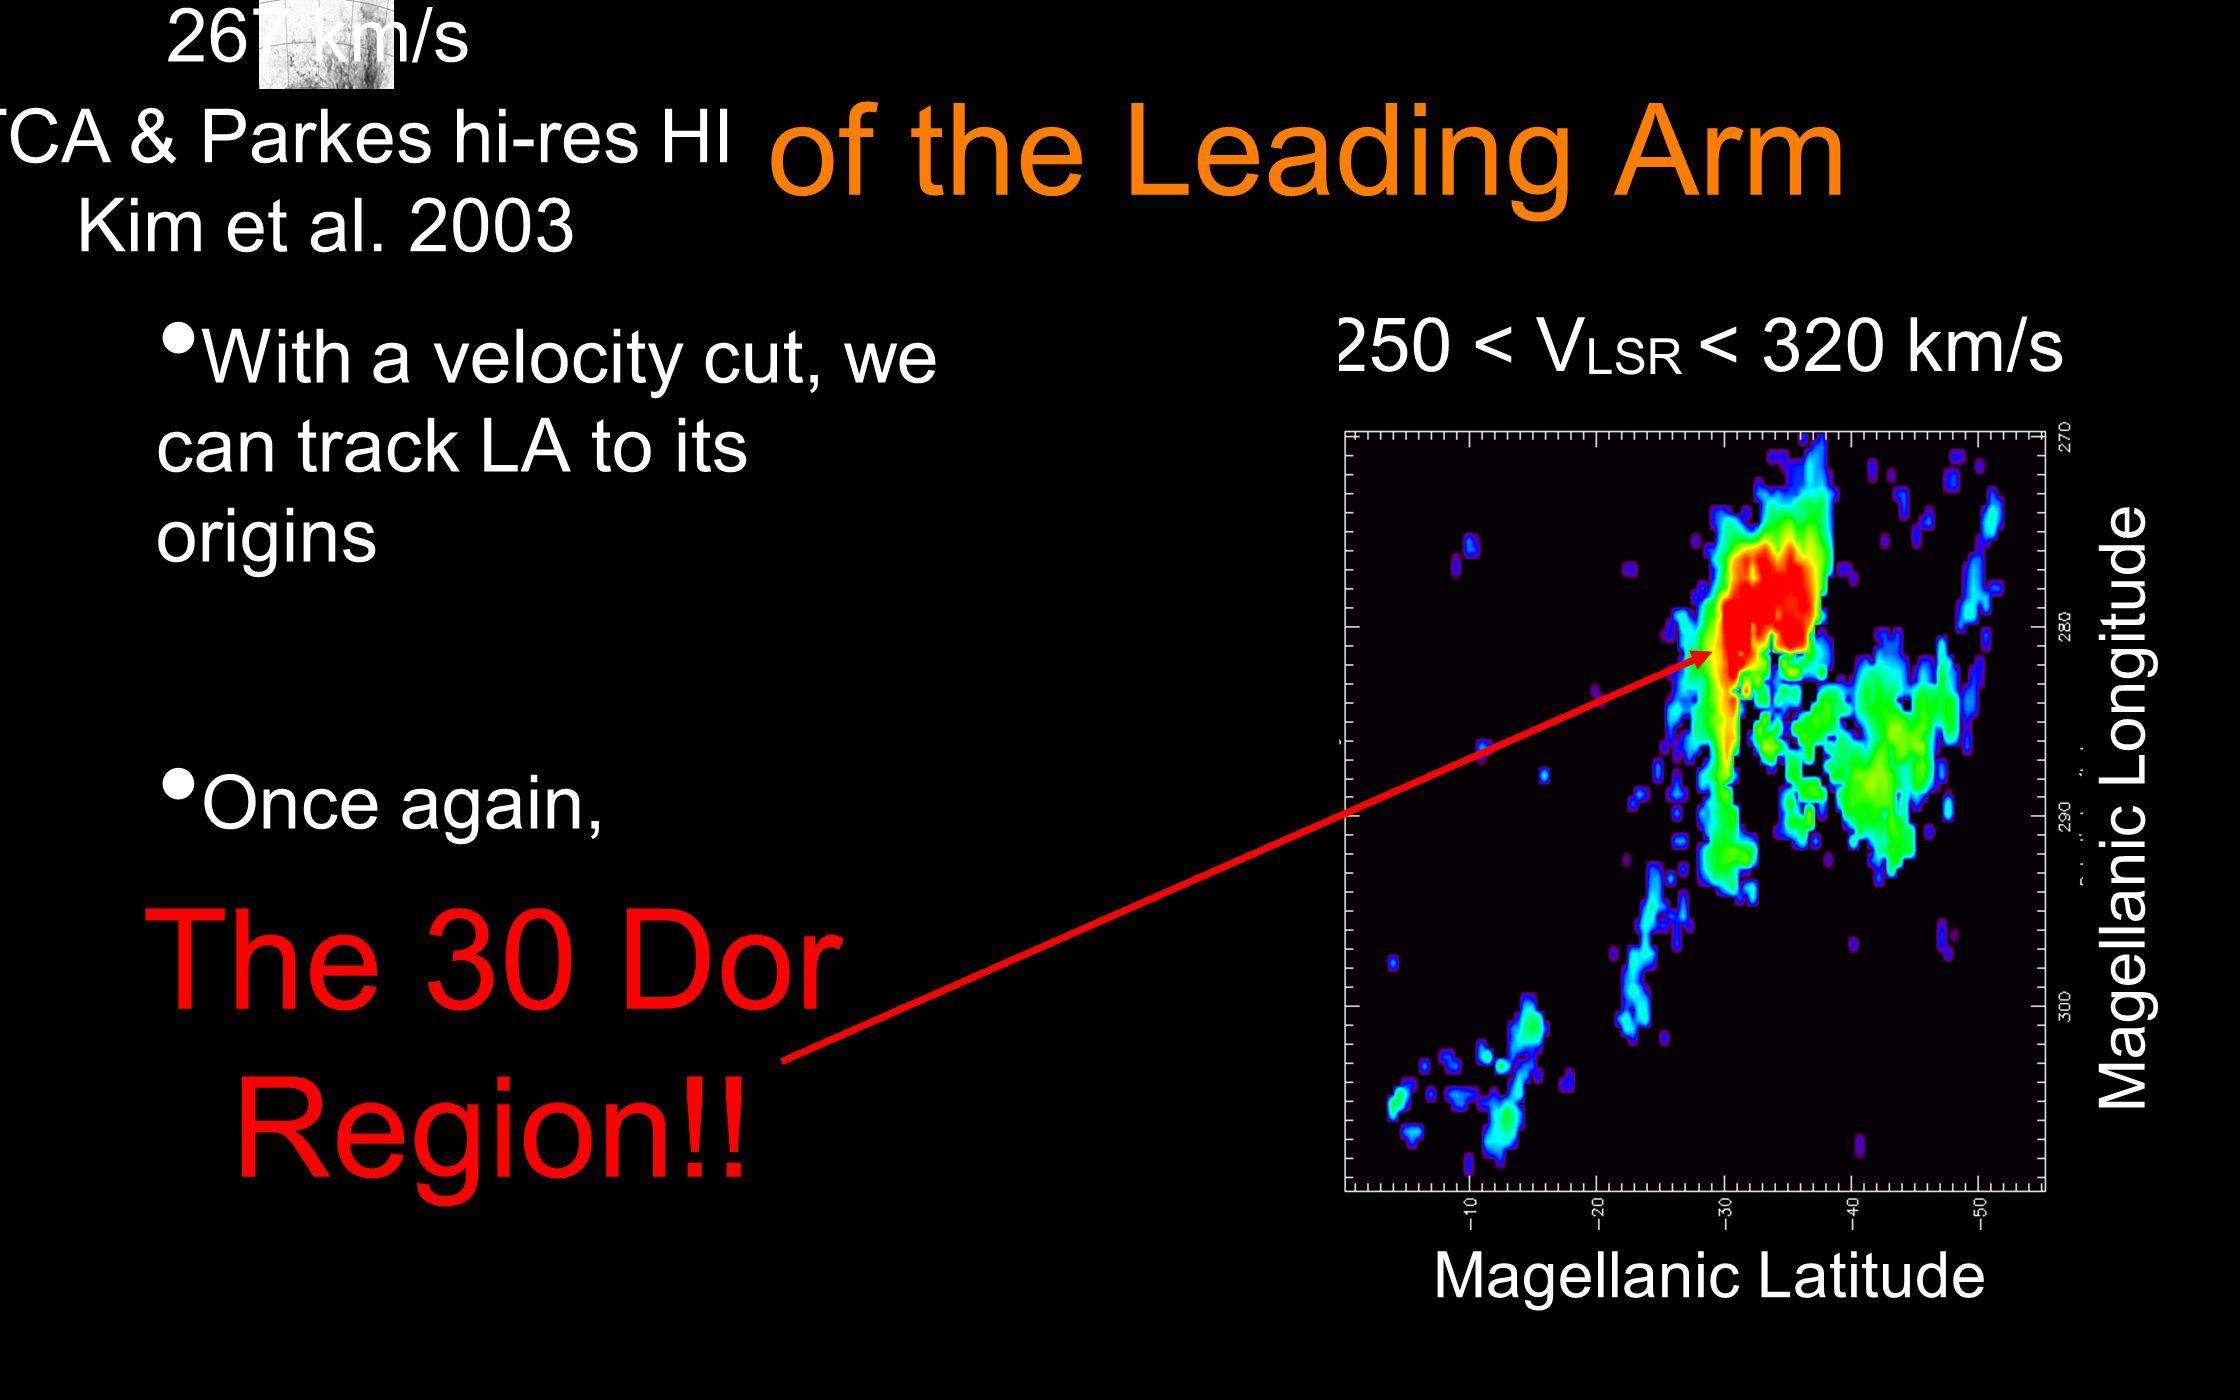 Origin of the Leading Arm With a velocity cut, we can track LA to its origins Once again, 250 < V LSR < 320 km/s The 30 Dor Region!.